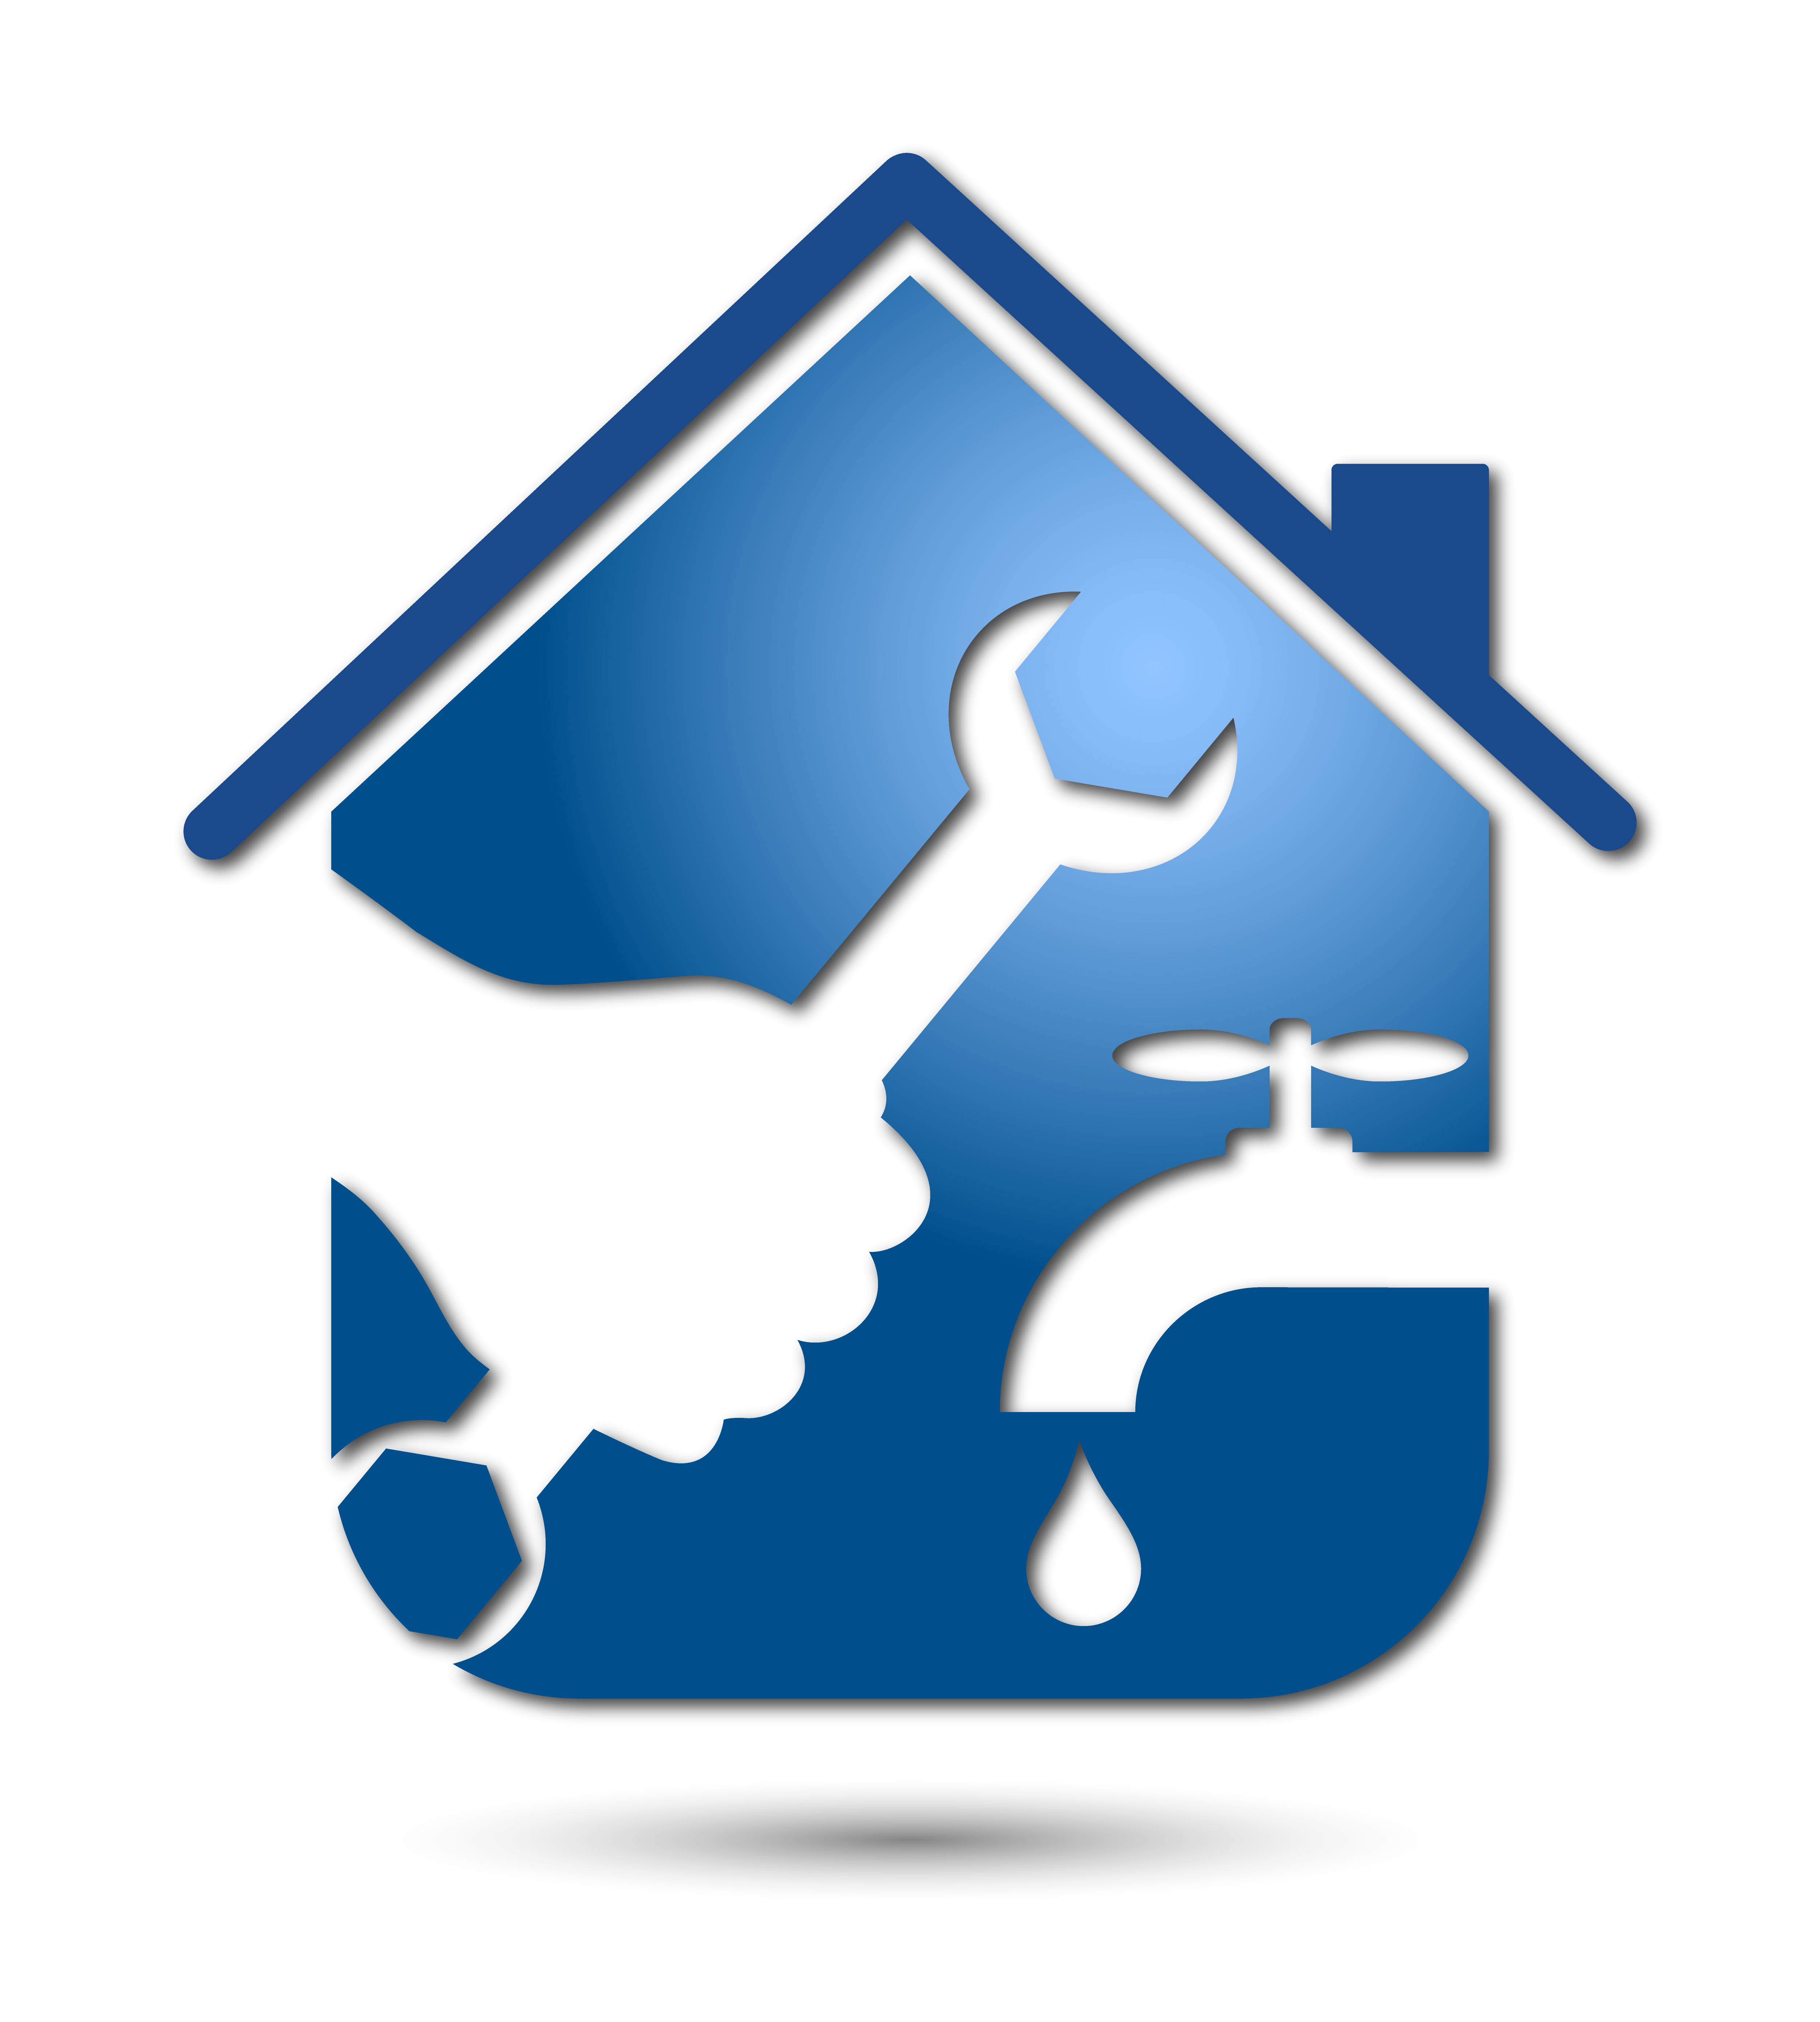 Plumbing clipart. And heating